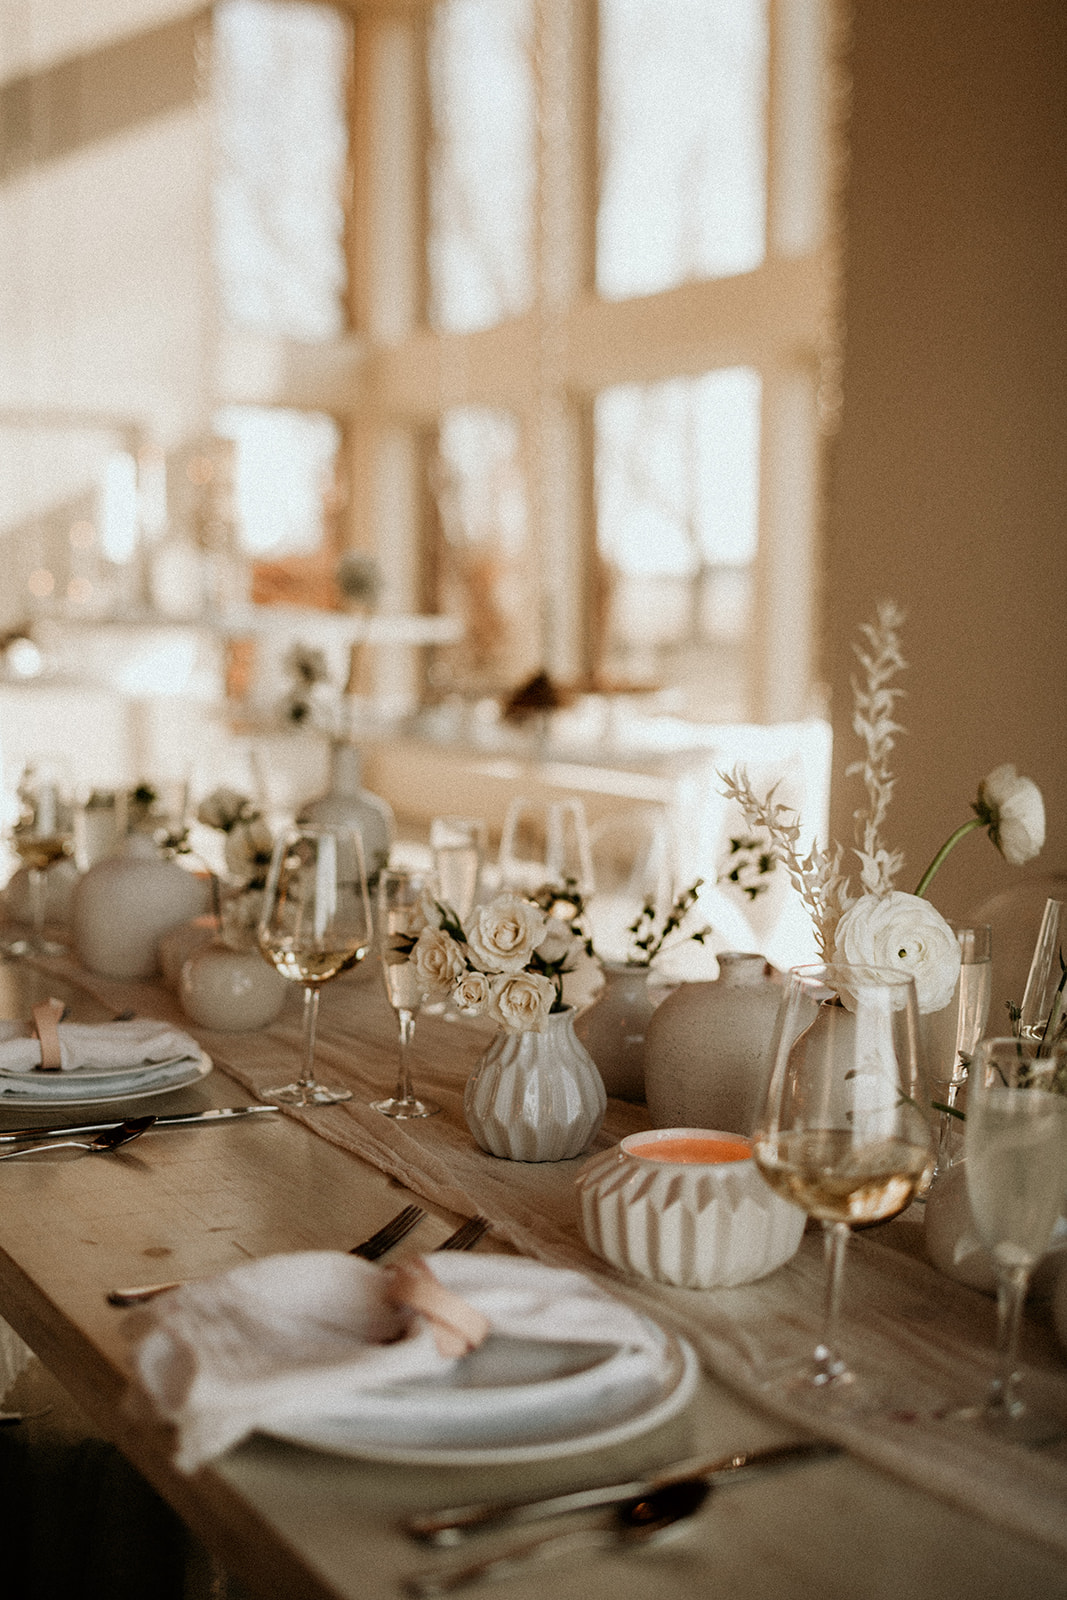 Dreamy Neutrals at Pear Tree Estate with Wright Photographs, Park Life Films, Apricity Ink, Elite Bridal Champaign, Lauren Foran Bridal Beauty,  Flowers by Kristine, LA Gourmet Catering and Spruce Rentals